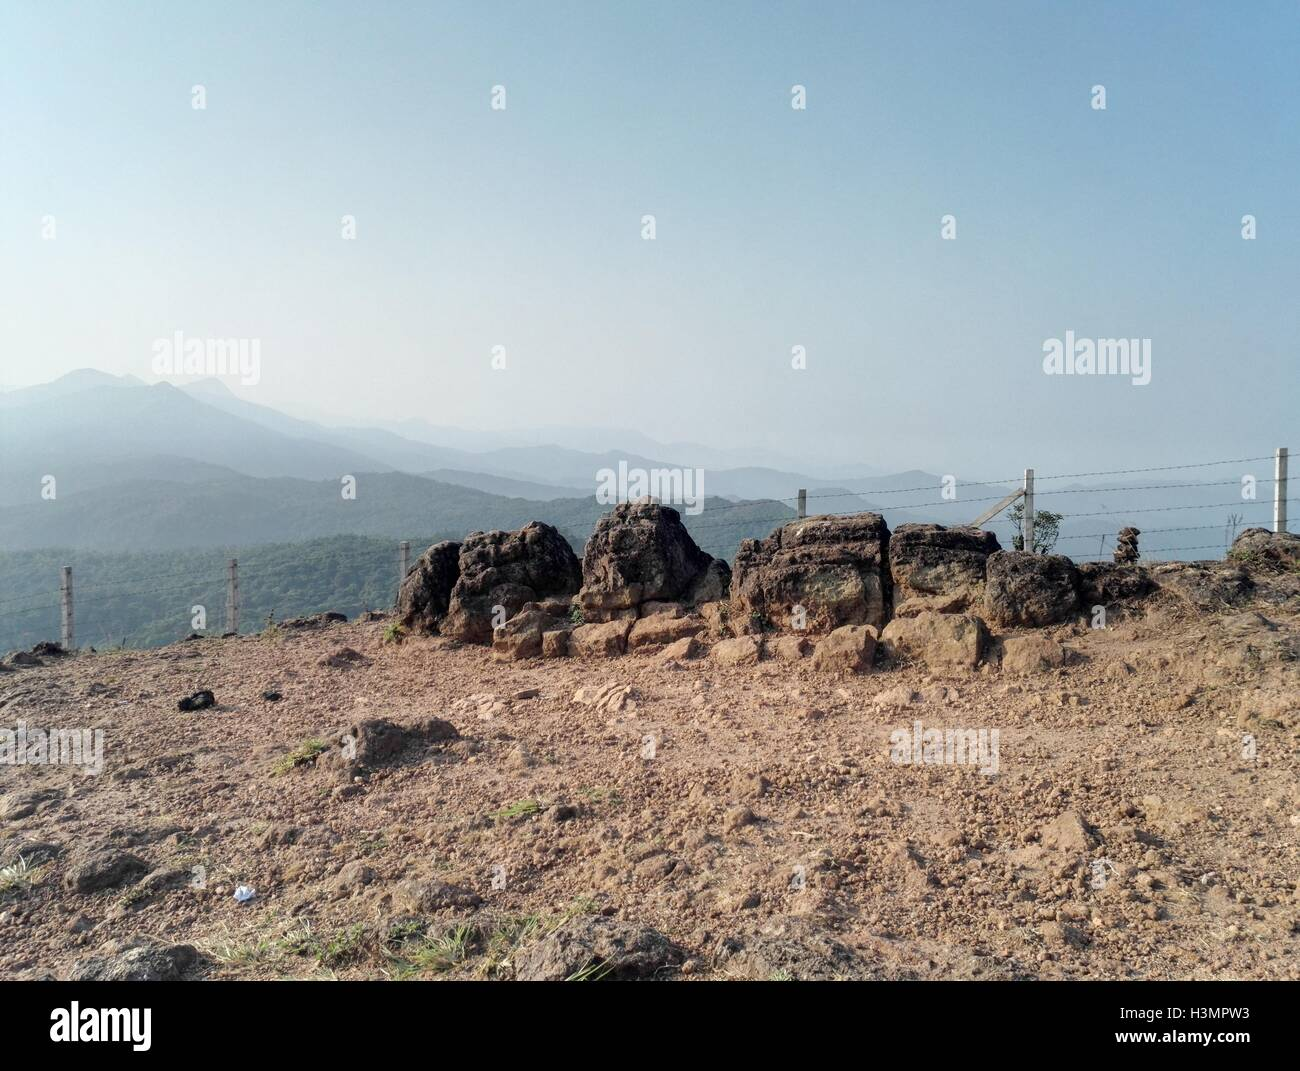 A barbed wire fence on a hill top - Stock Image